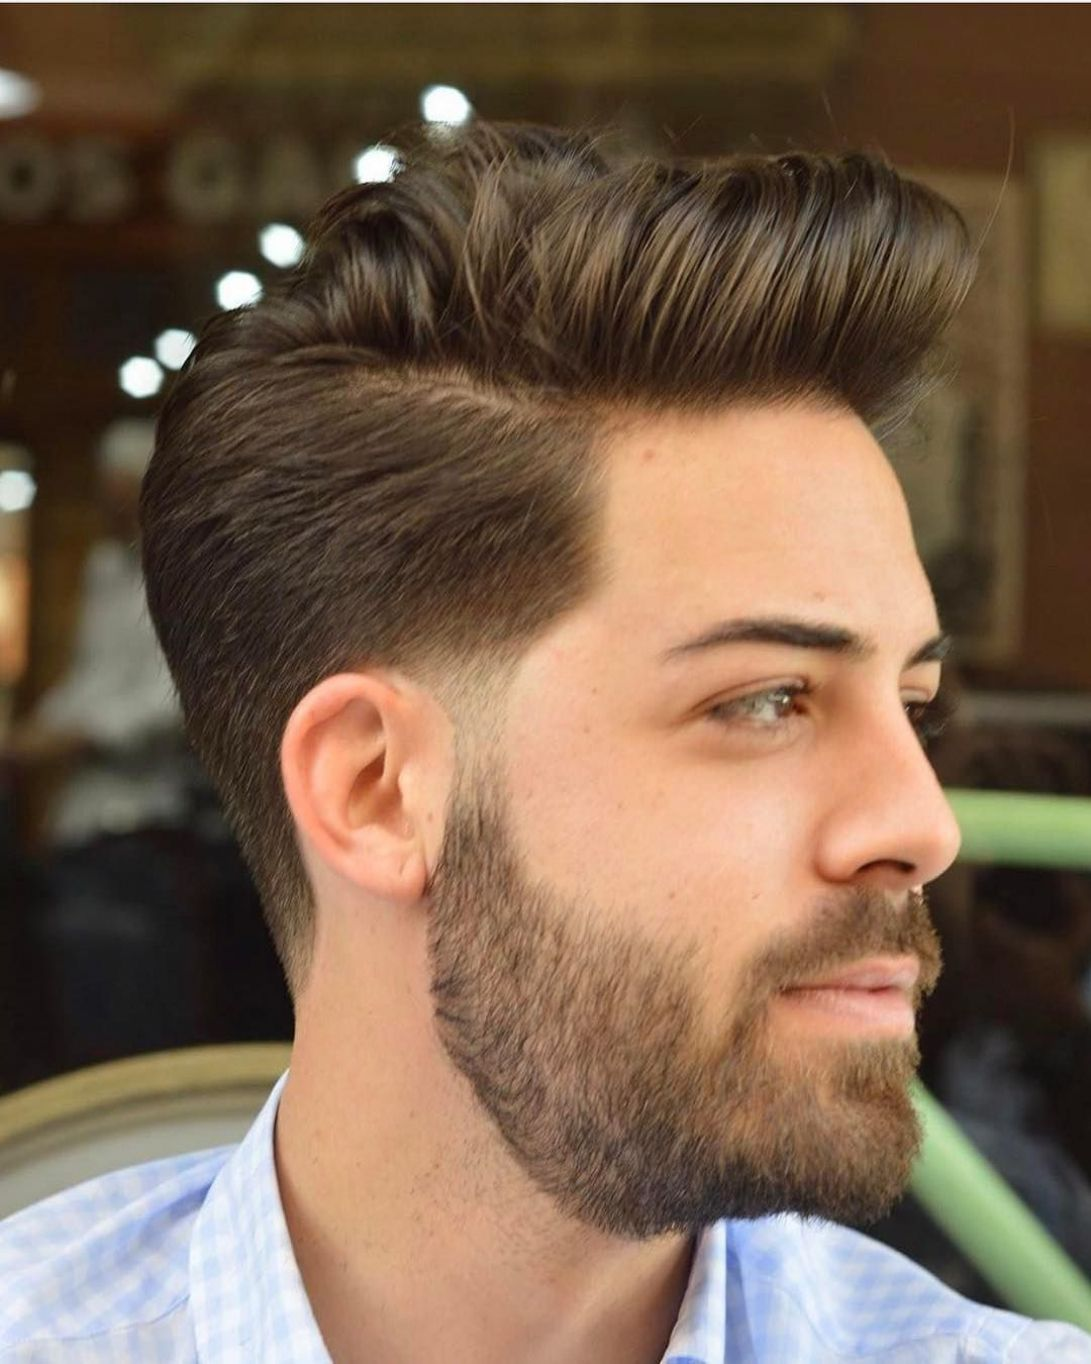 Astounding Mens Quiff Cool Win Handsome Men Hairstyle Mens Quiff Mens Hairstyles Beard Styles Haircuts For Men